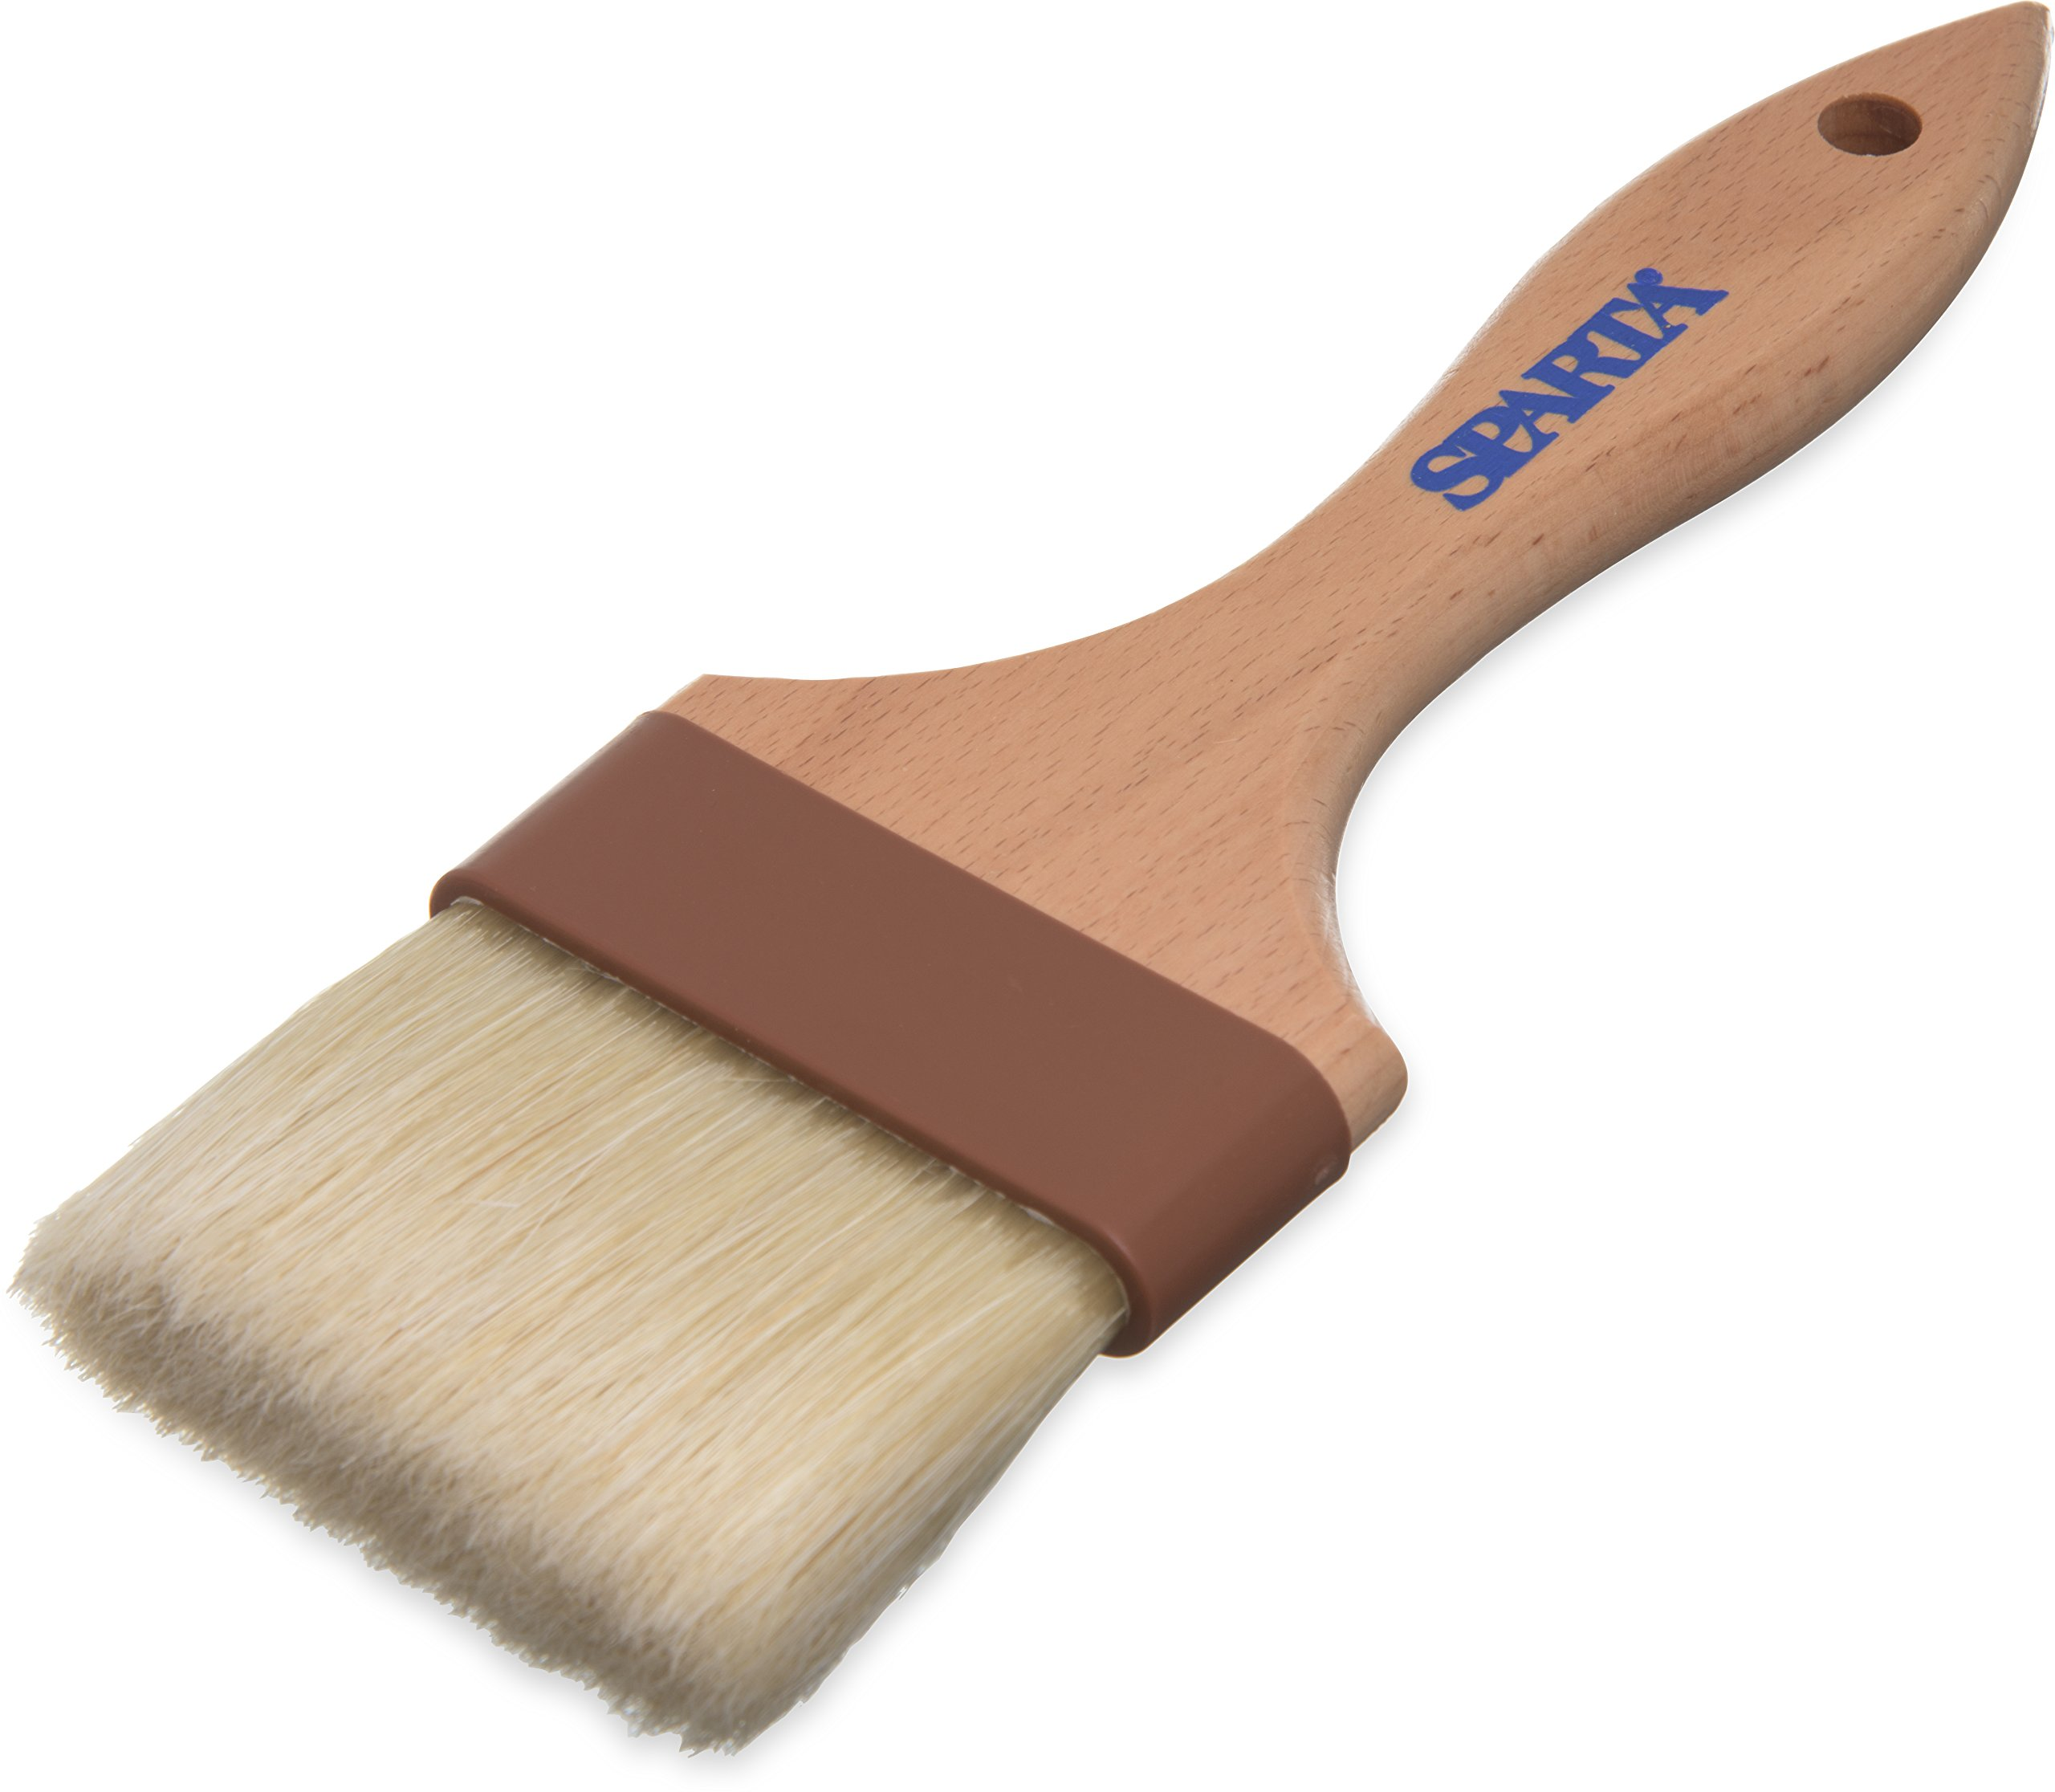 Carlisle 4037500 Sparta Wide Flat Basting Brush with Boars Bristles, 3'' by Carlisle